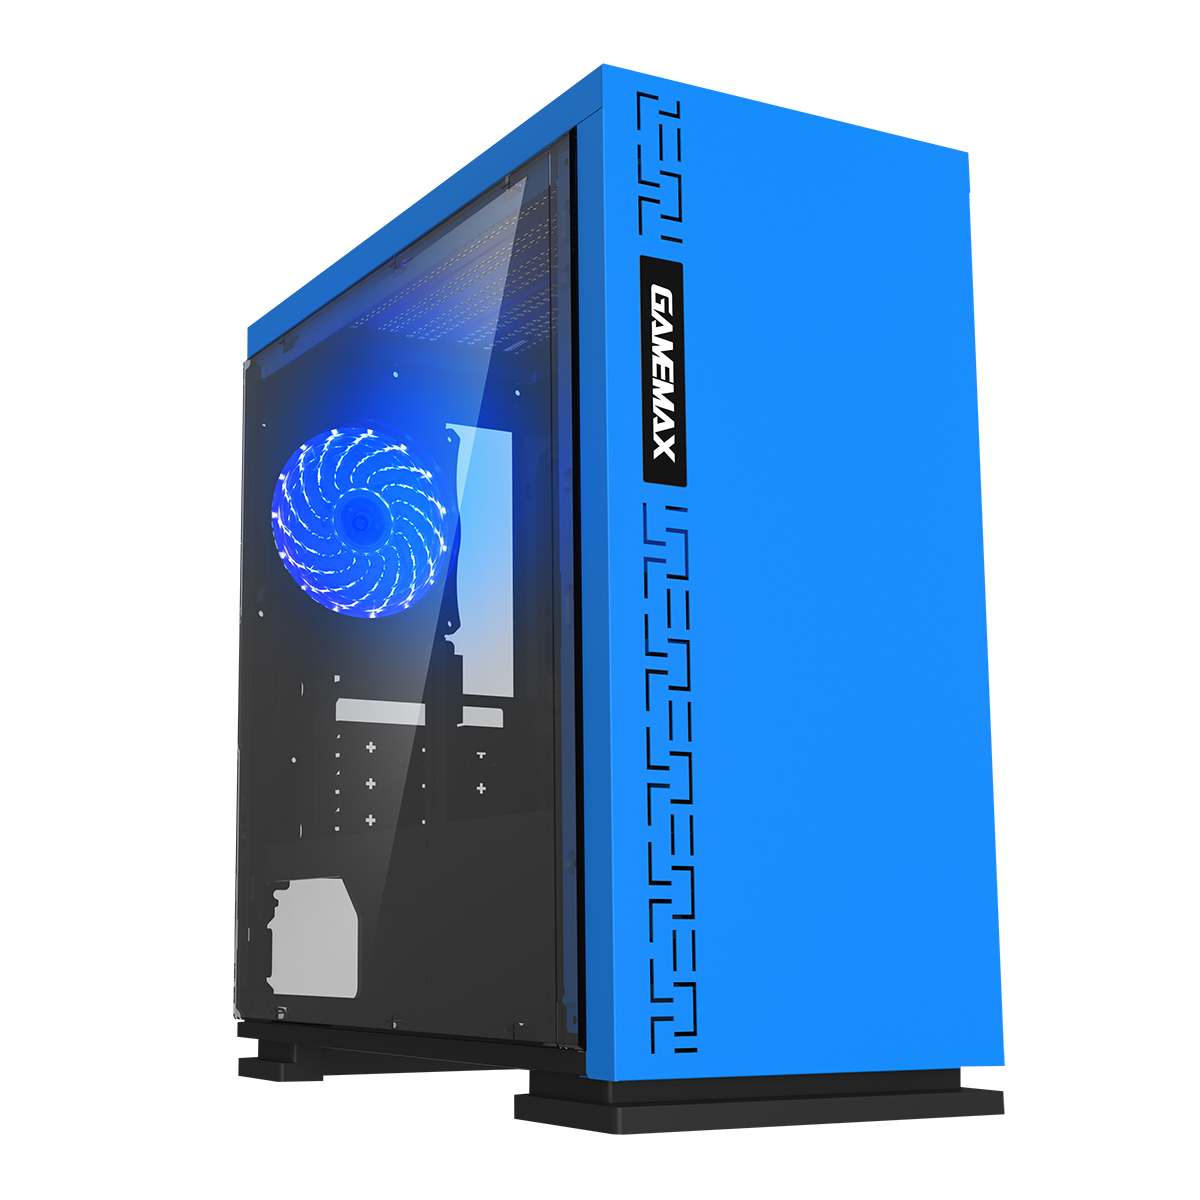 Game Max Expedition Microatx Blue Gaming Case Gaming Computer